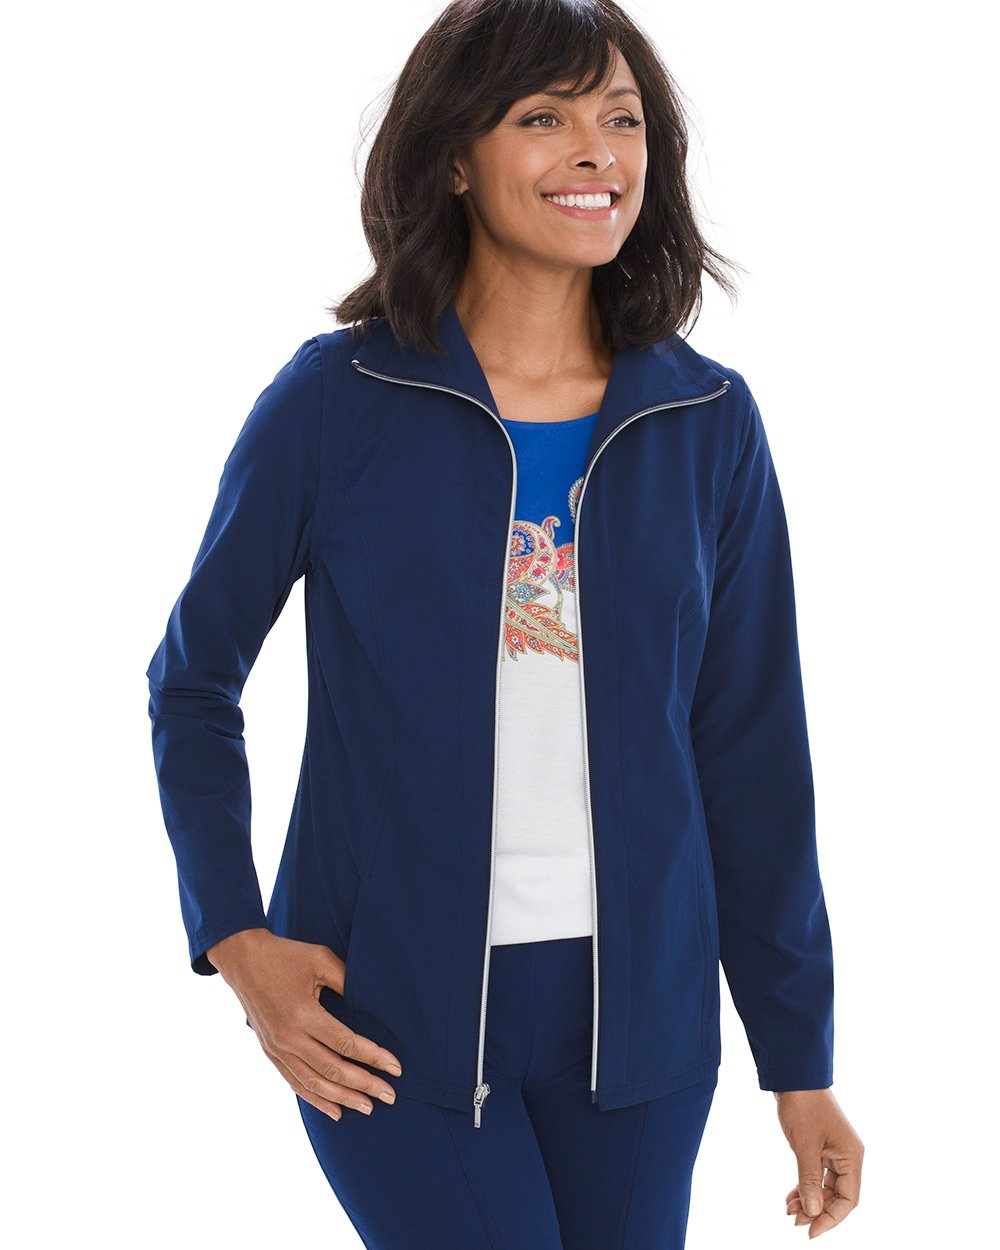 Chico's Women's Zenergy Neema Convertible Jacket Size 8/10 M (1) Tonga Navy